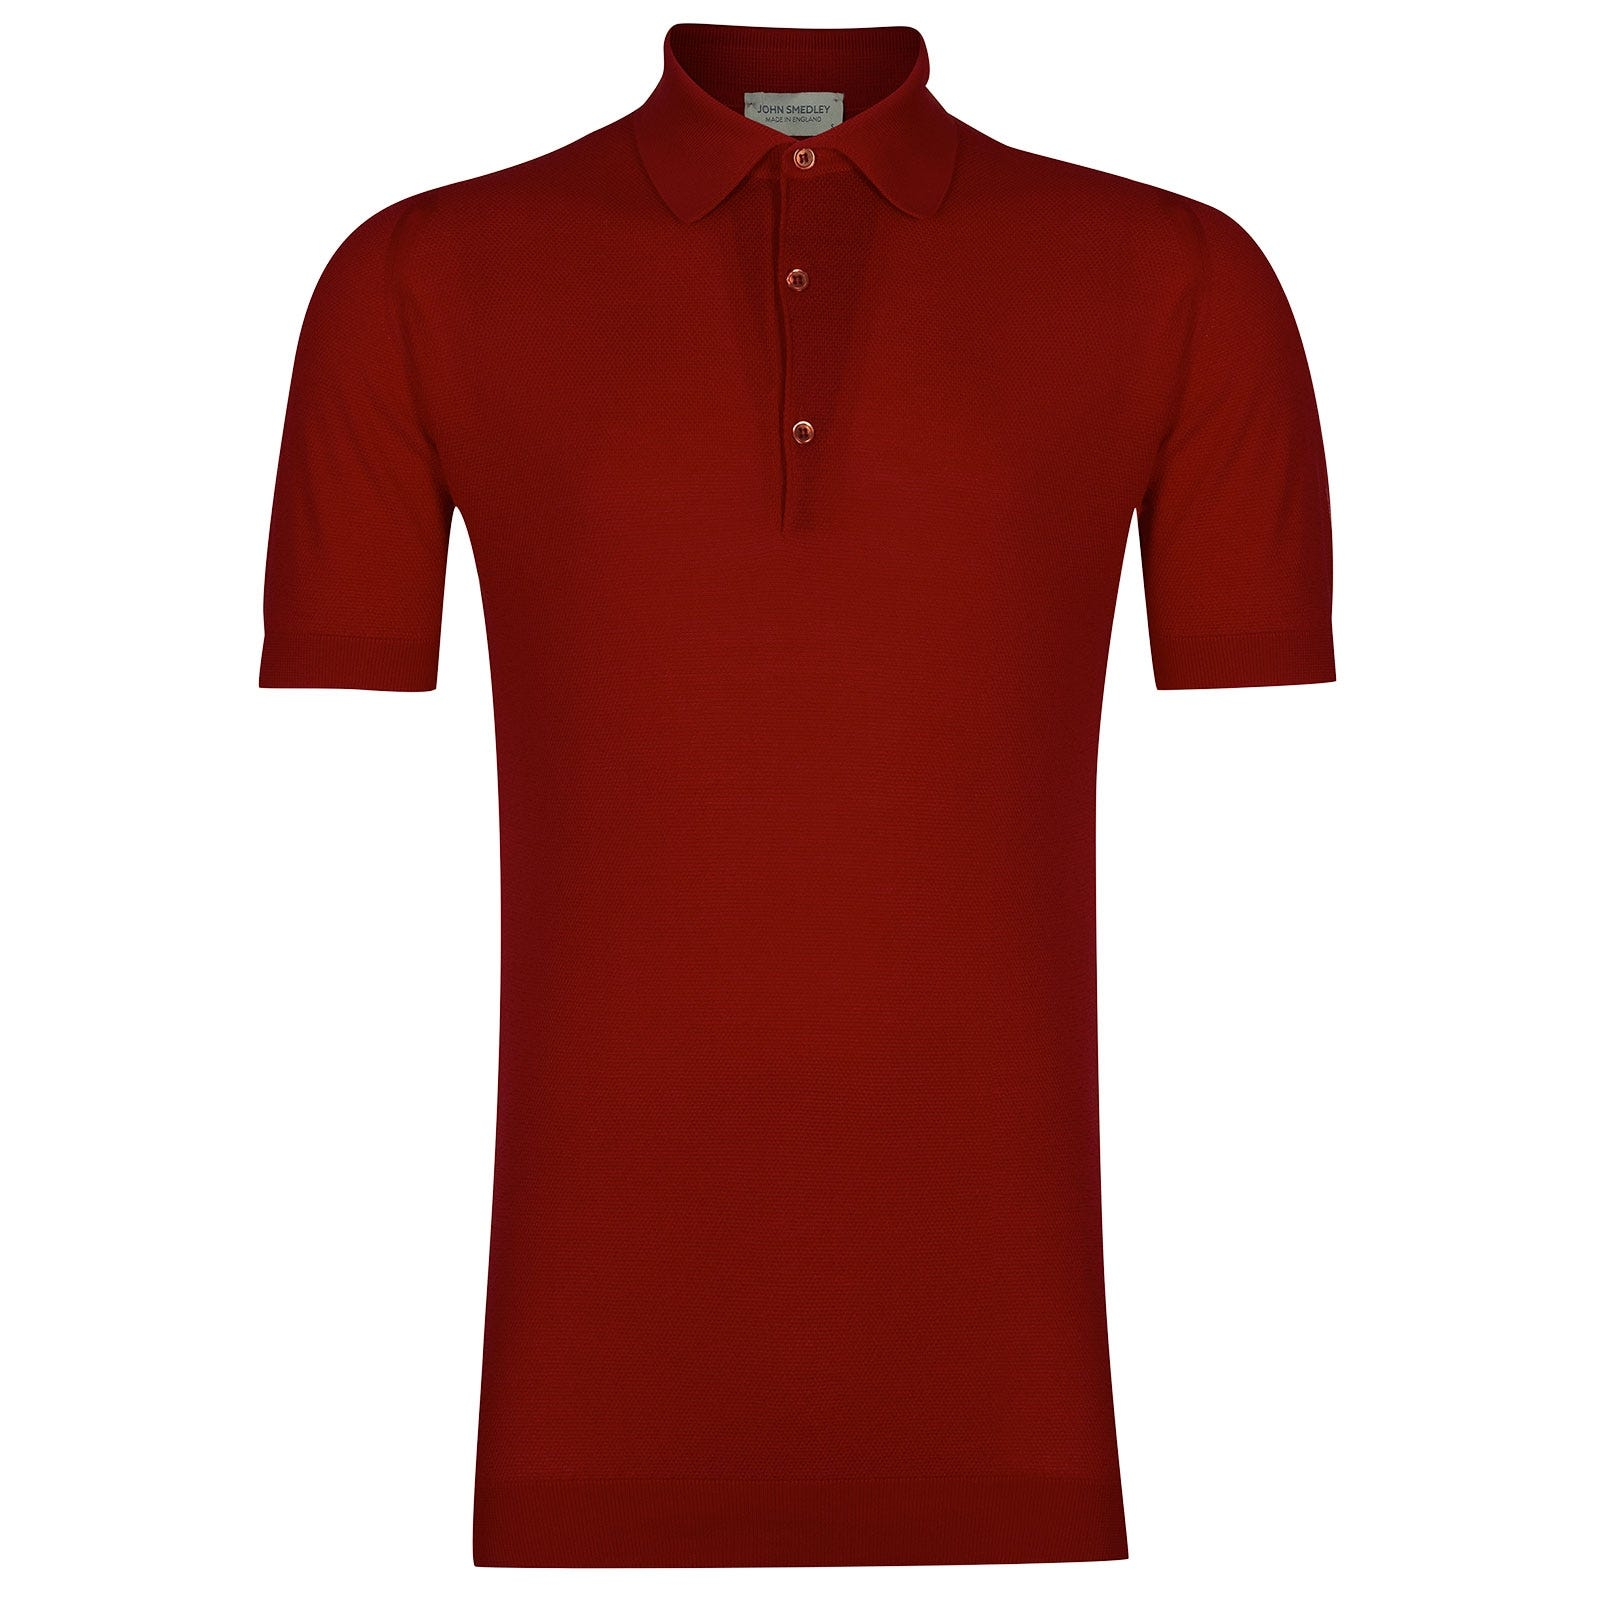 John Smedley RothSea Island Cotton Shirt in Thermal Red-XXL